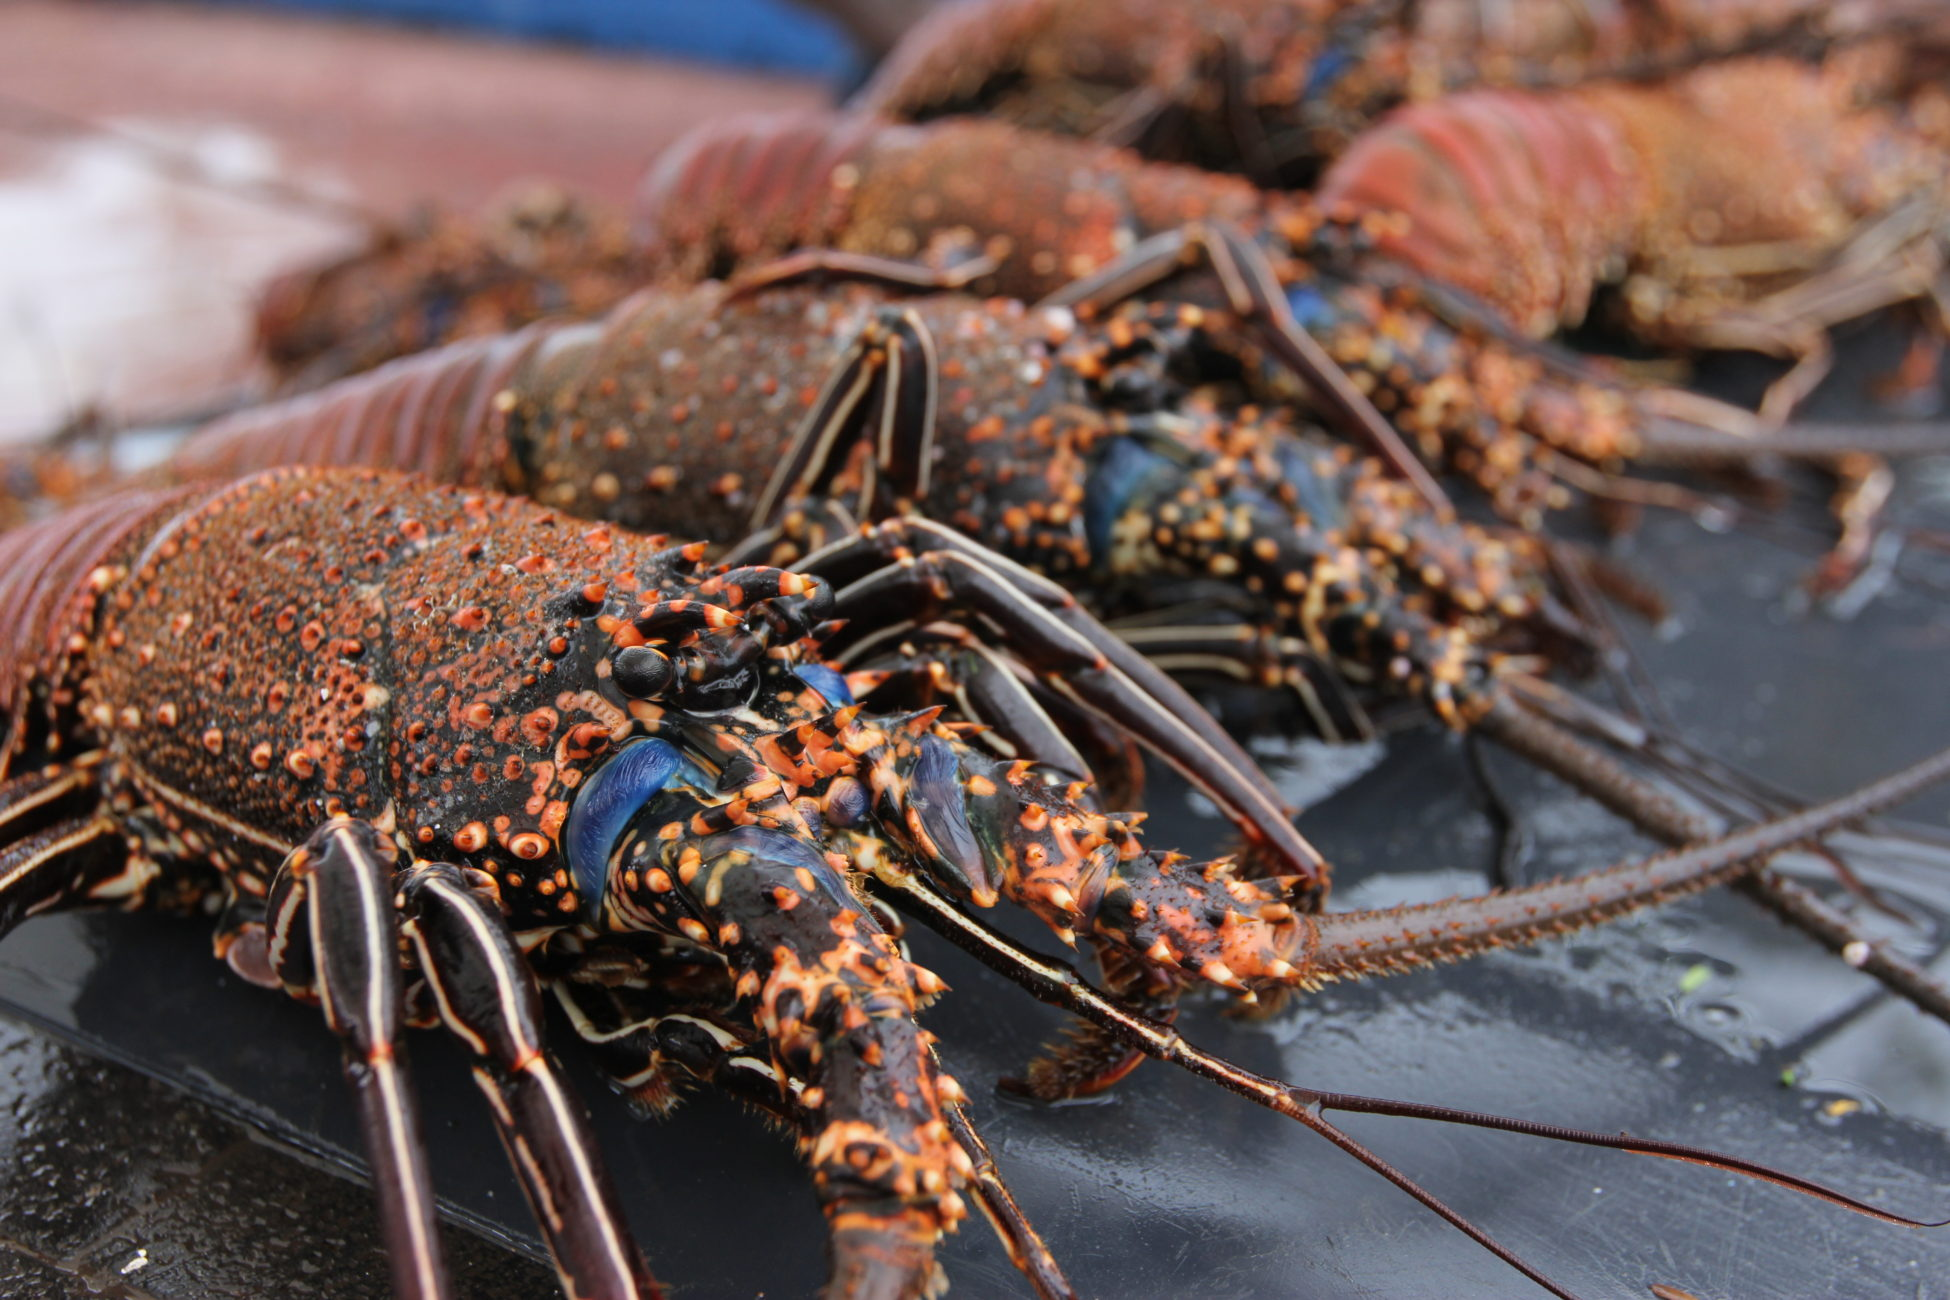 Close-up picture of a live spiny lobster